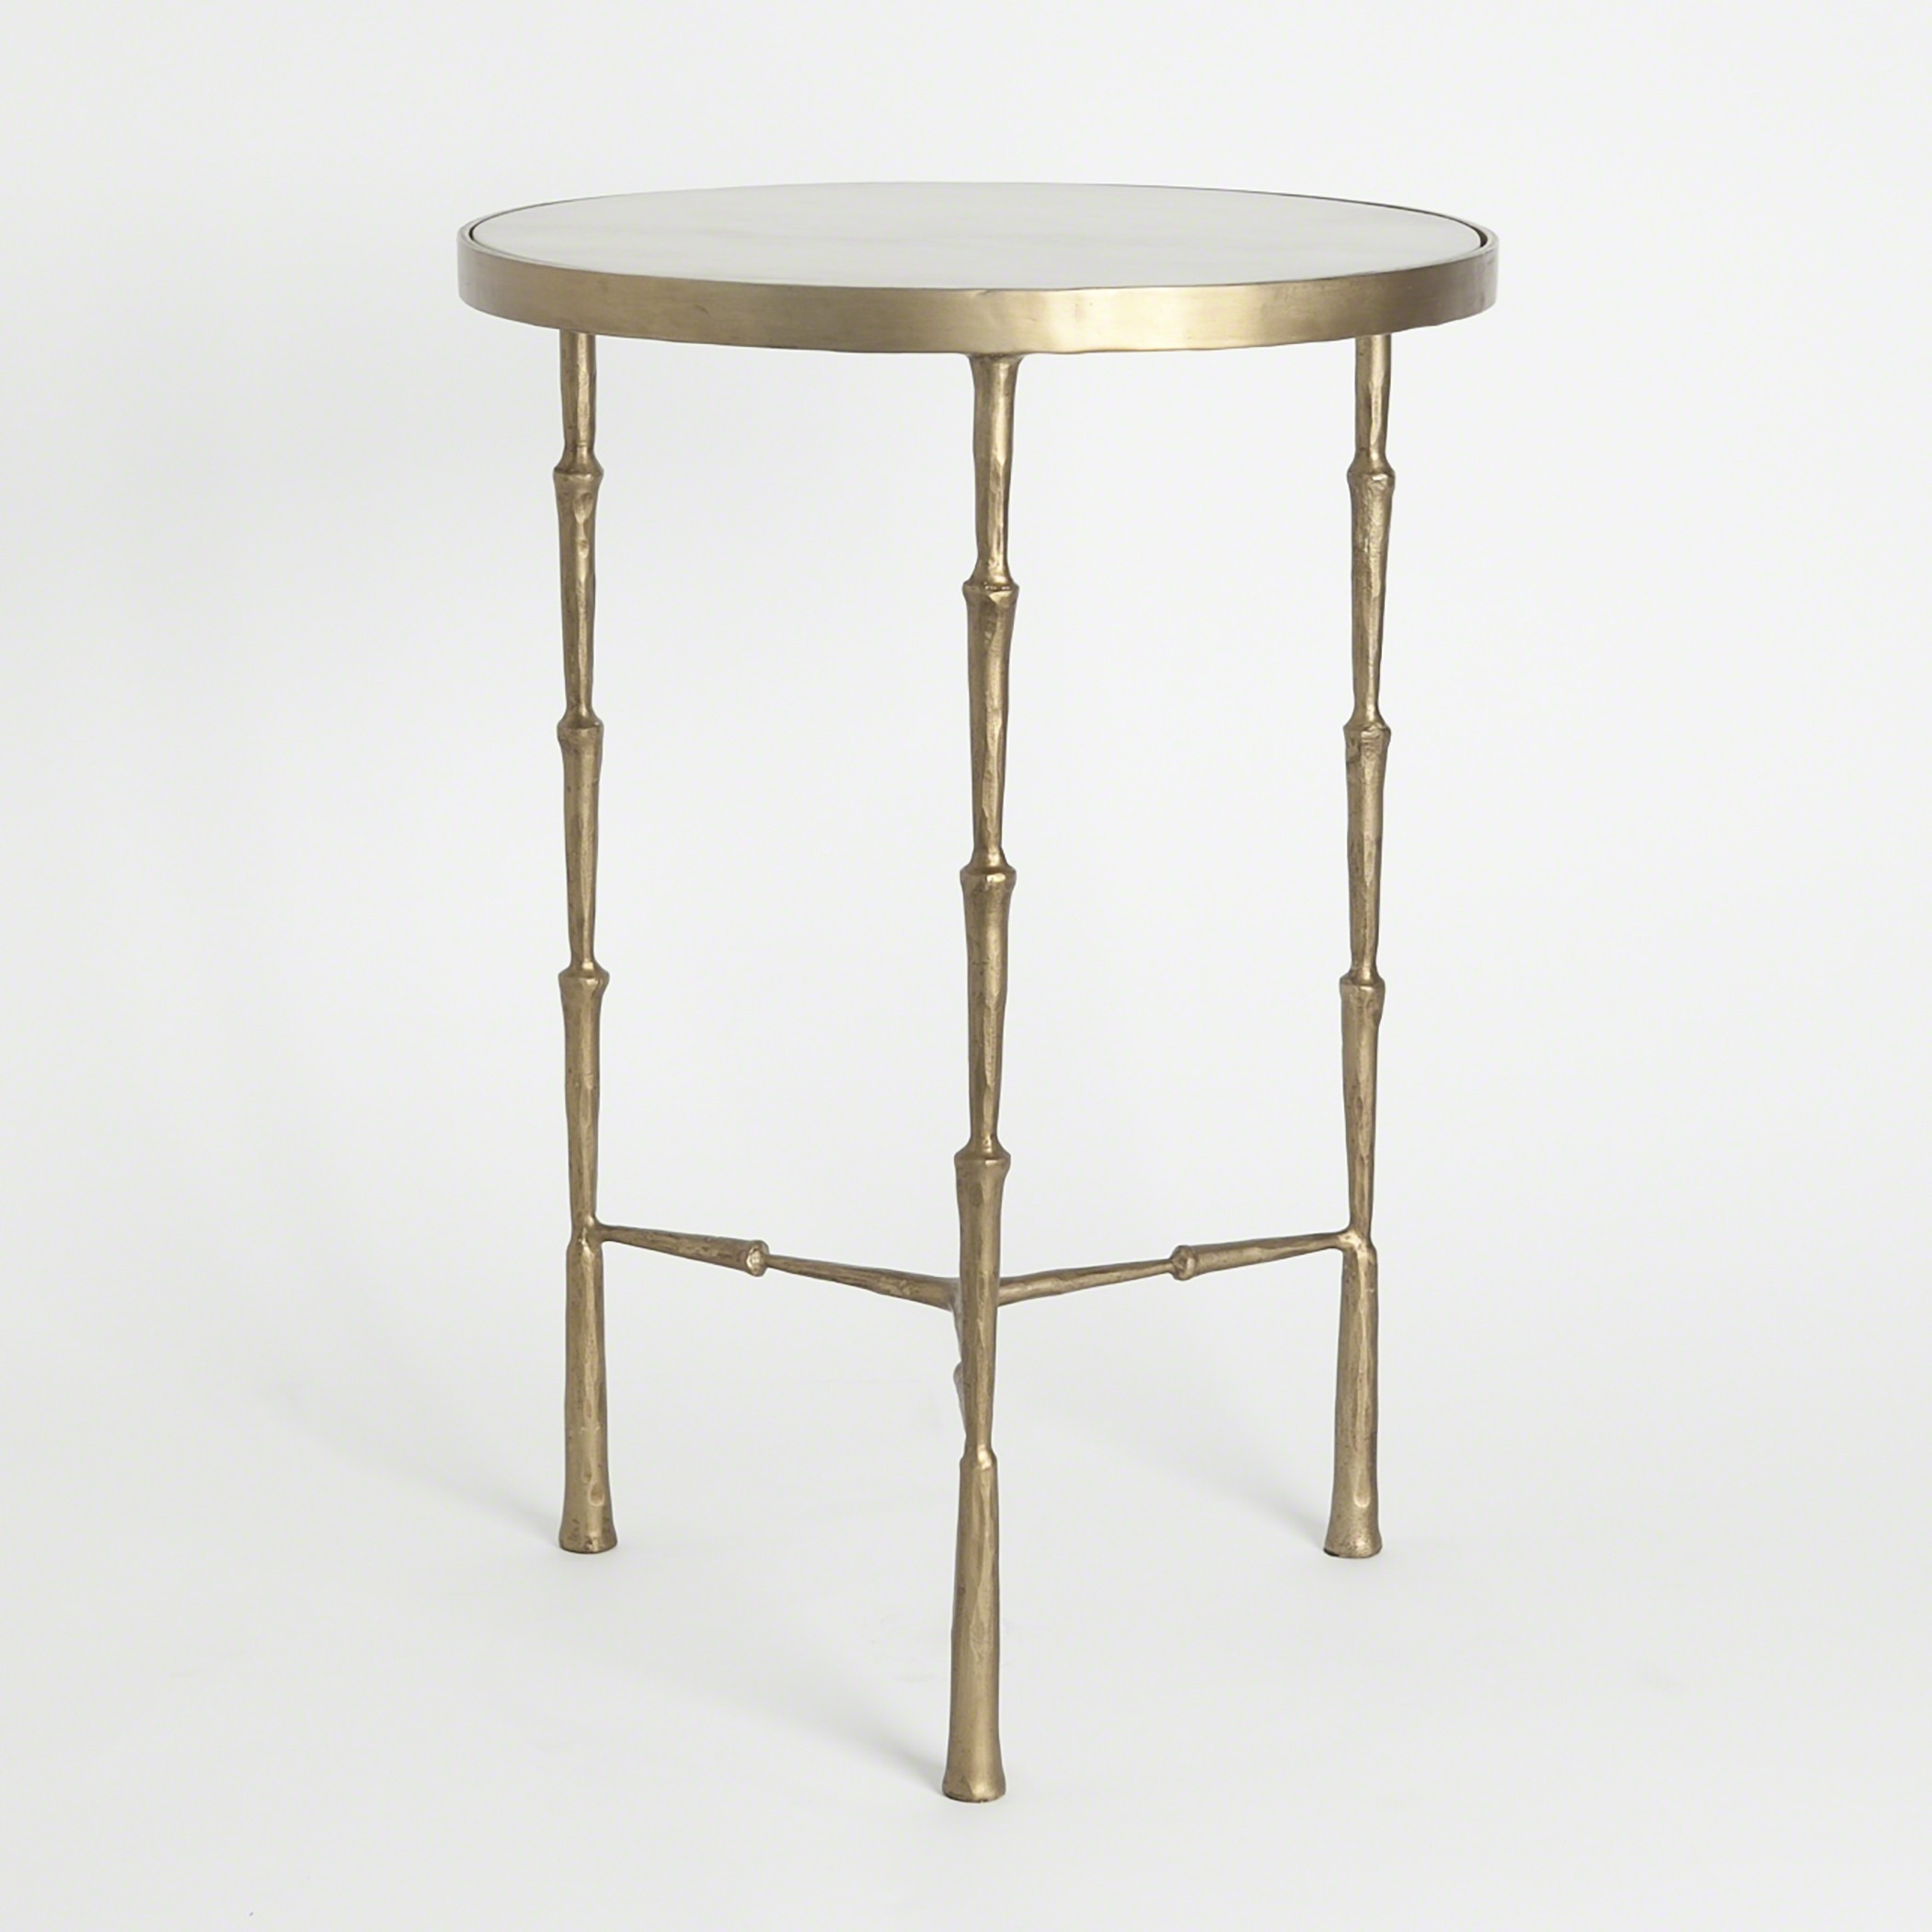 mira accent table white marble and bronze spike solid pine furniture round side cover small black bedside acrylic with shelf vintage oriental lamps coffee legs corner dining room